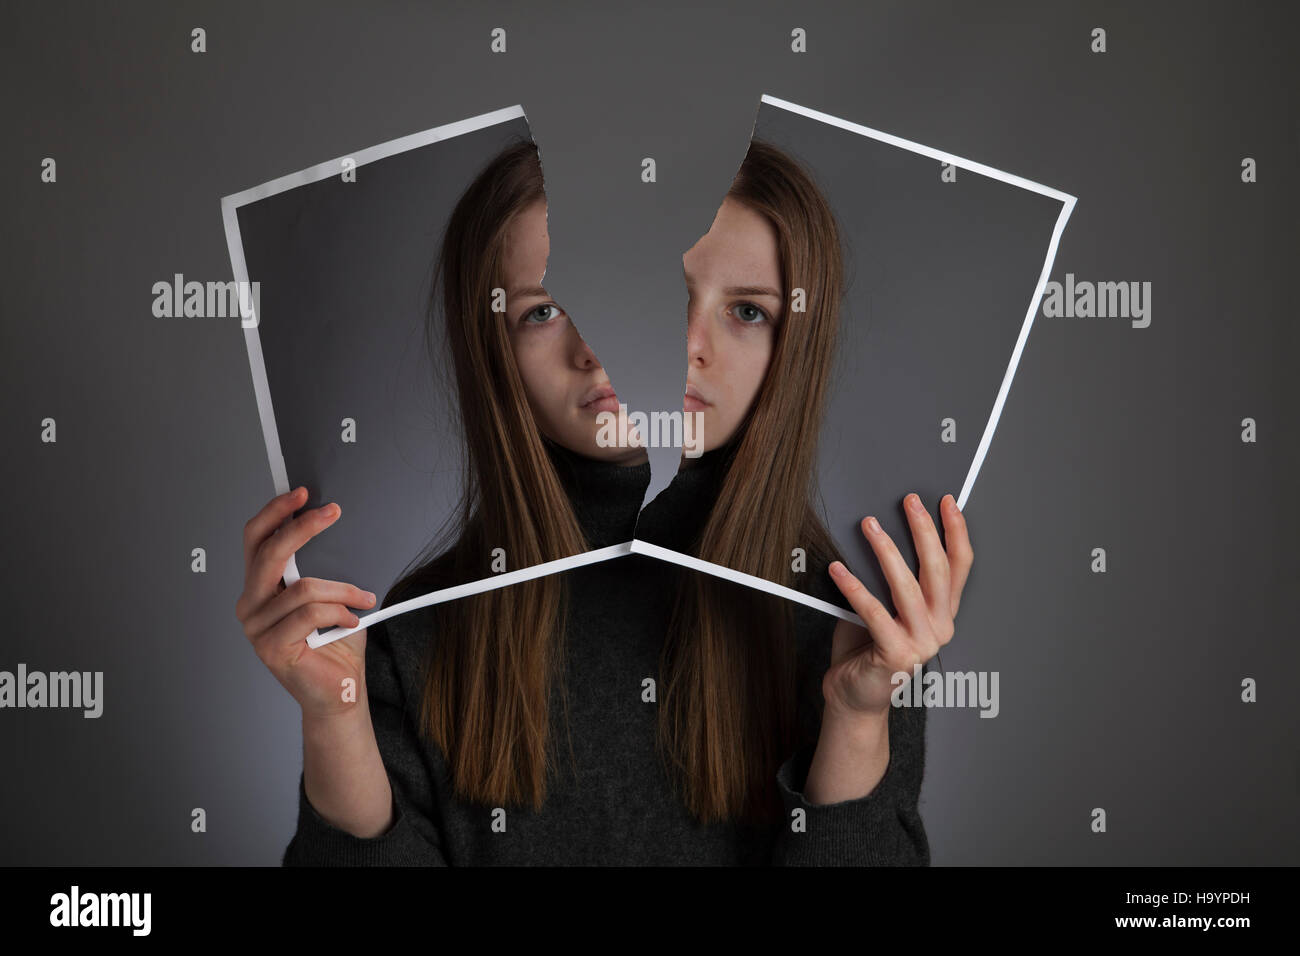 Surreal image - Girl holds up a torn photo of herself, with invisible head. - Stock Image